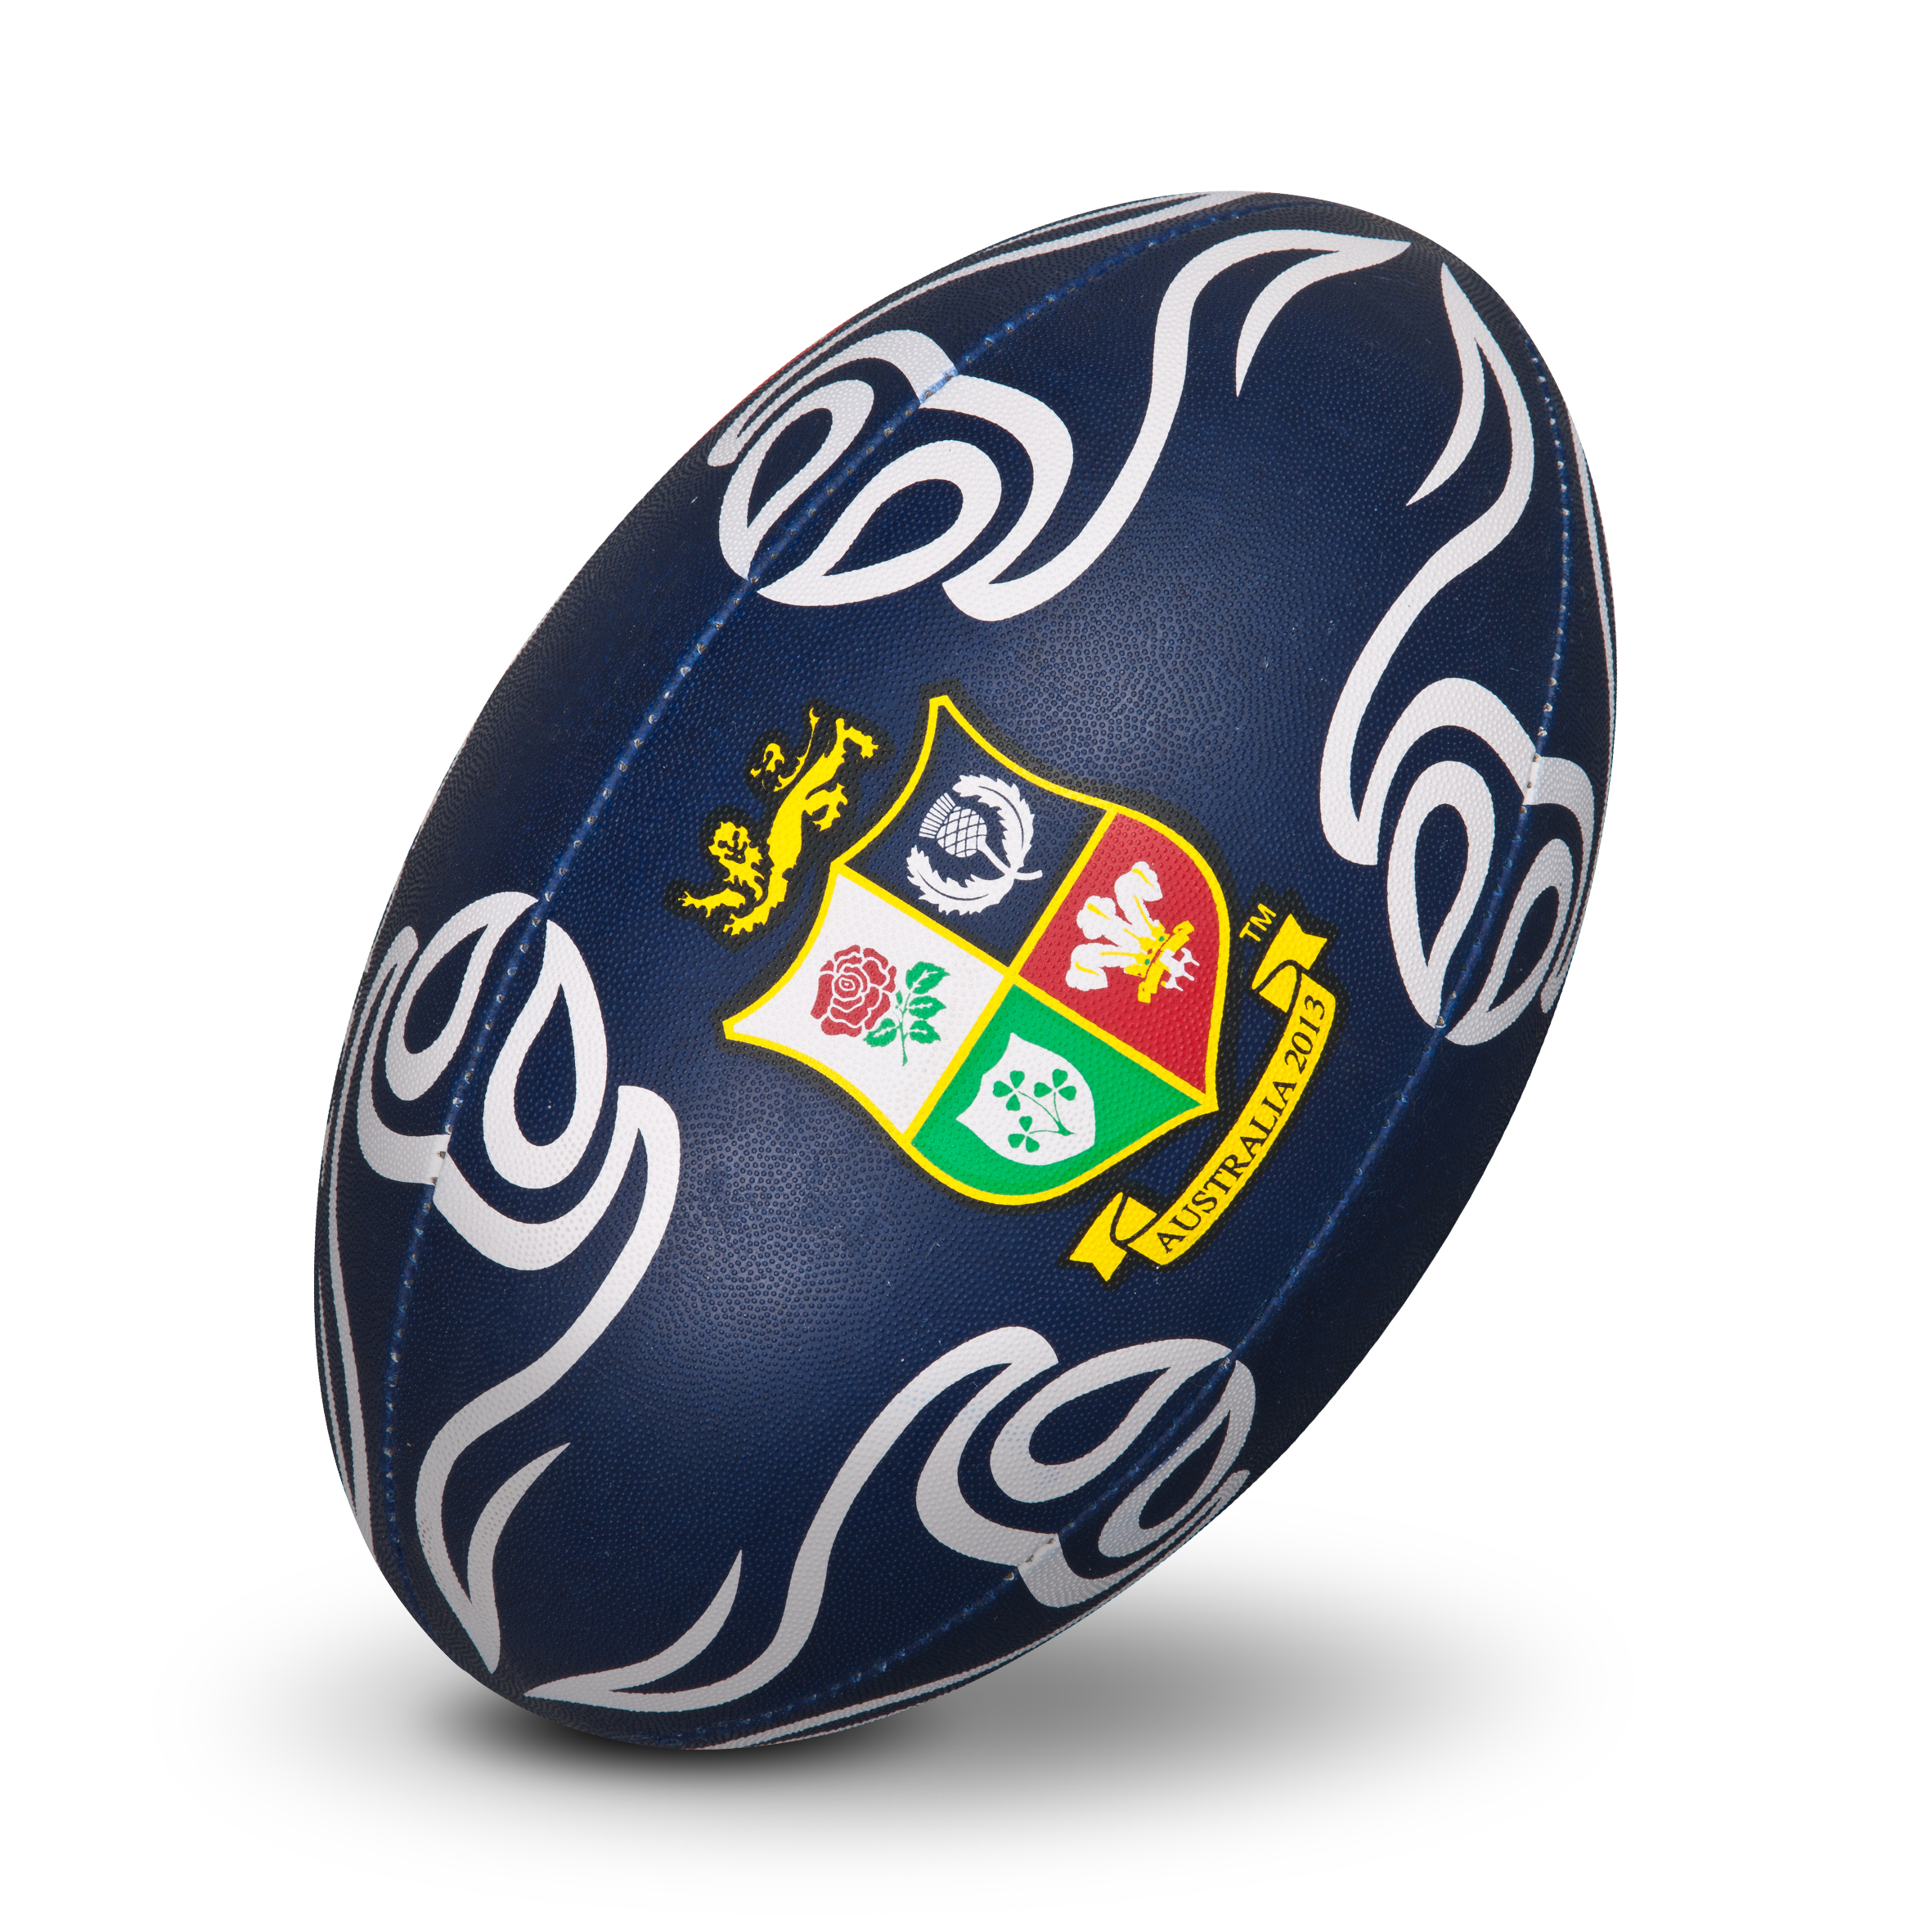 British and Irish Lions Supporters Rugby Ball - Blue/White